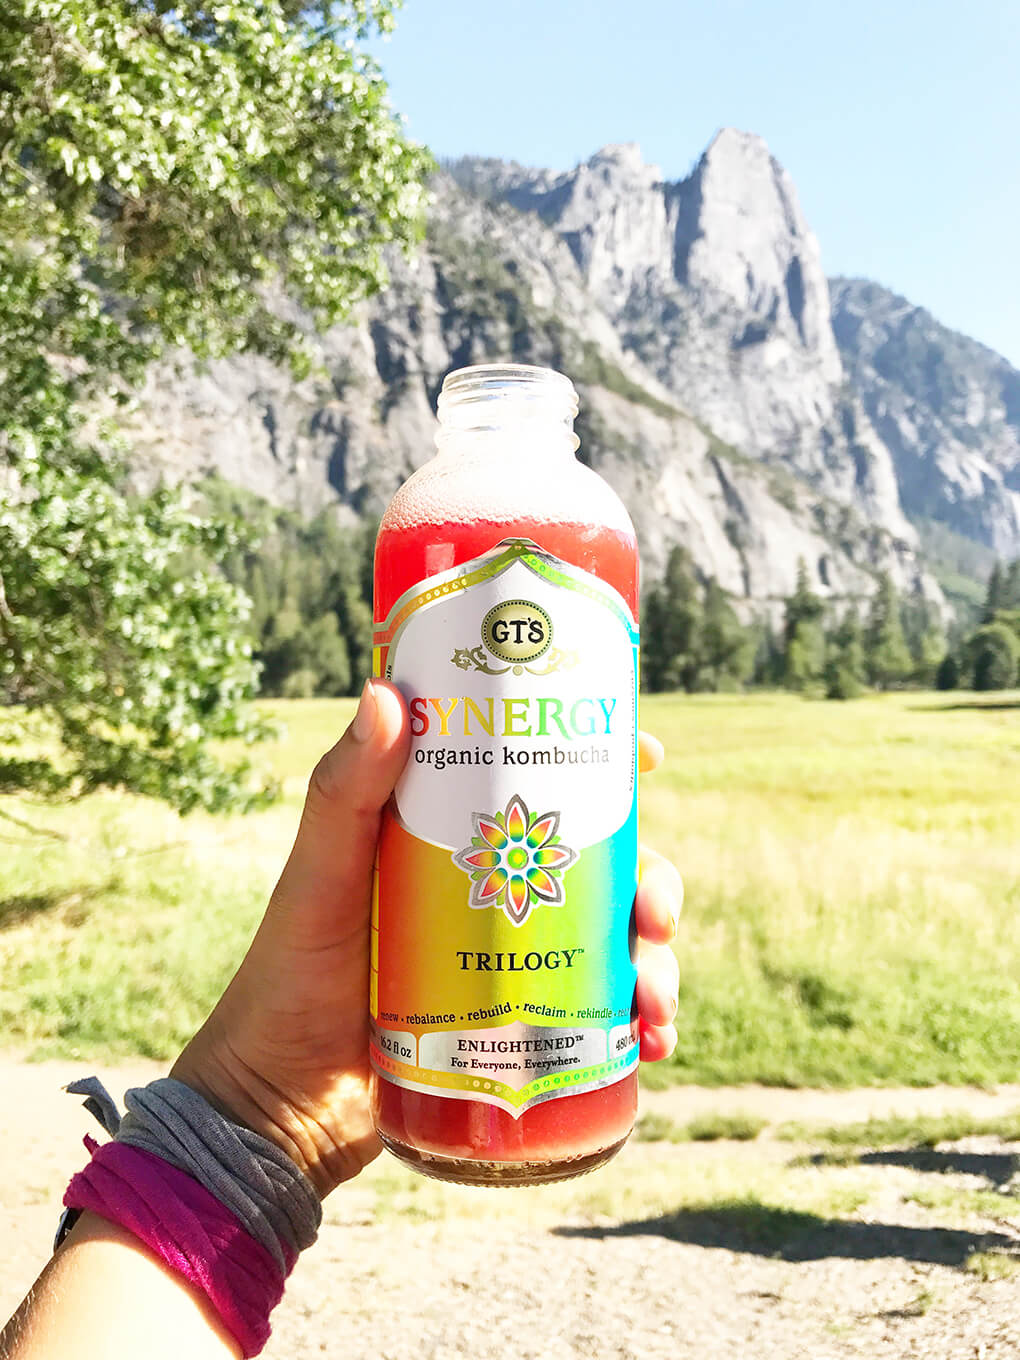 Running and Illness. Can you and should you run through illness? Taking time off to recover vs. pushing it. via sarahkayhoffman.com Hiking Yosemite sarahkayhoffman.com GT's Kombucha